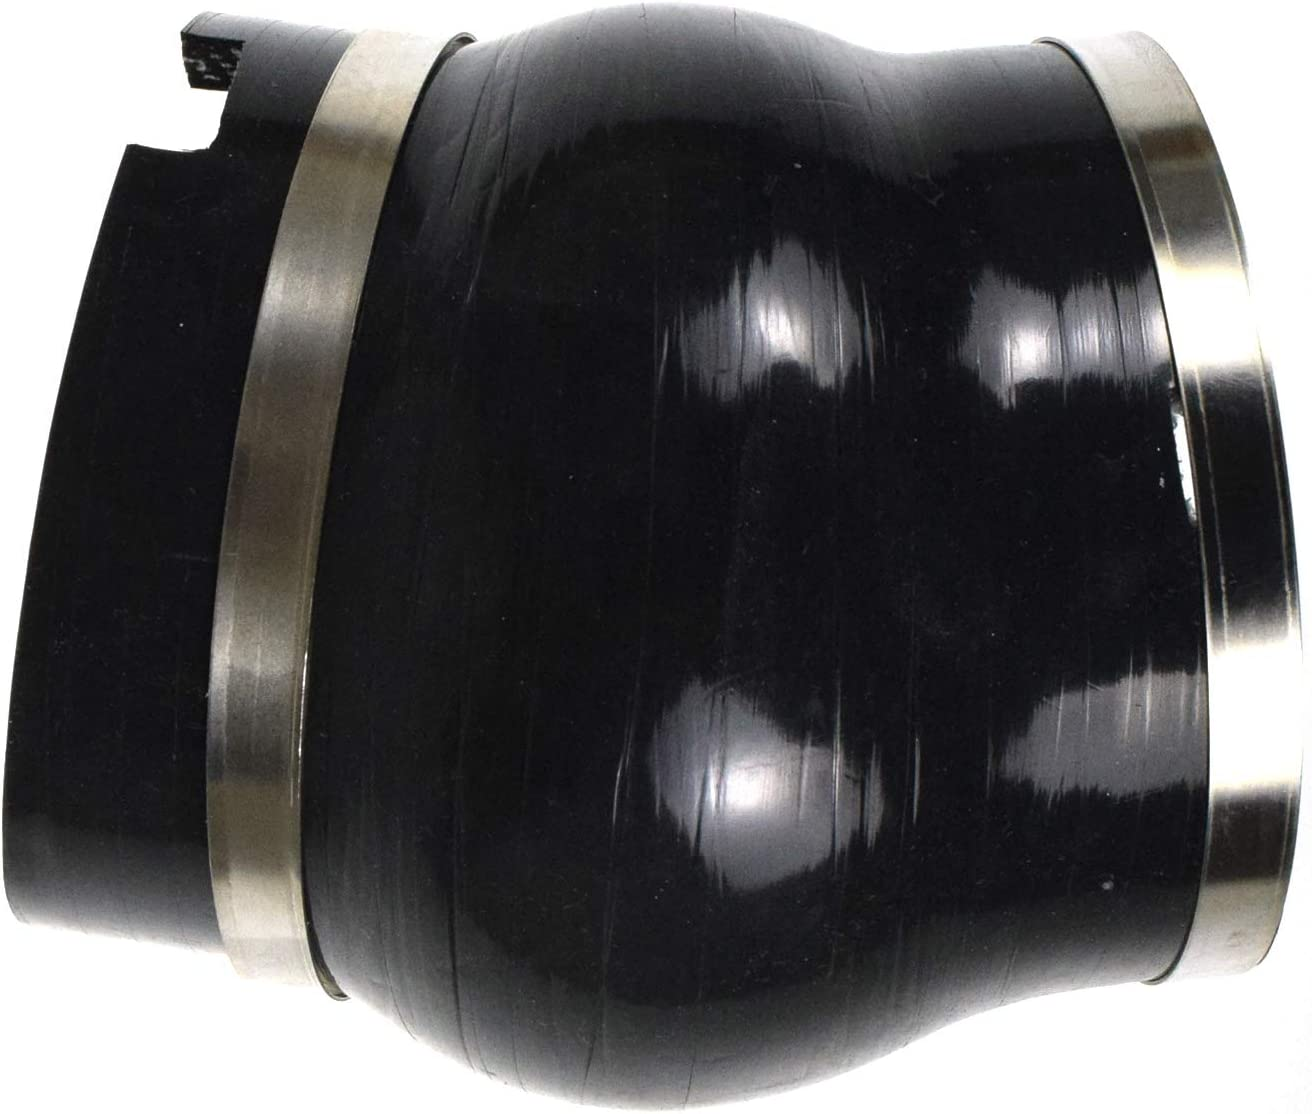 Intake Coupler Bellow Kit For 1998-2002 Camaro Trans Am LS1 Ls6 F-Body Air Cold Bellows Smooth